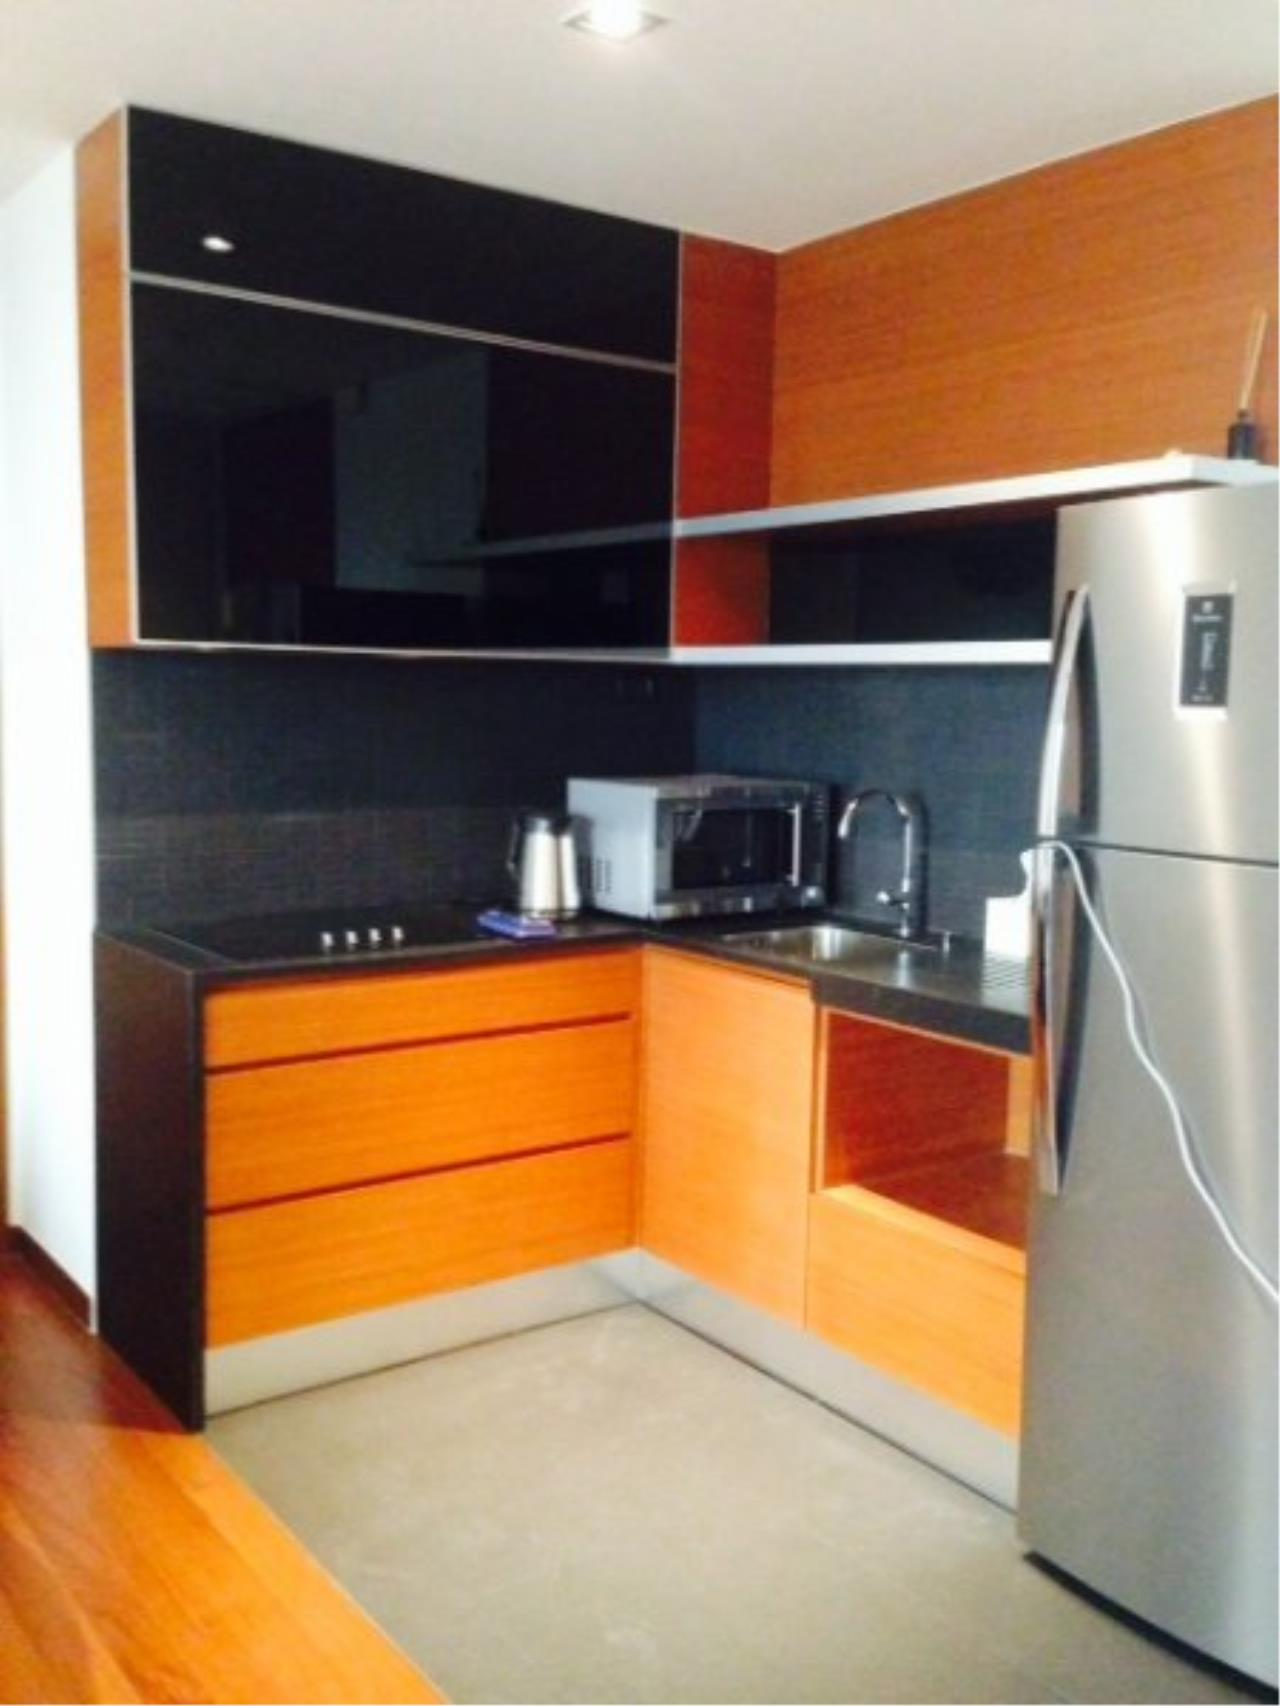 Piri Property Agency's Bright 2 Bedrooms Condo in the Ashton Building for sale on high floor 6